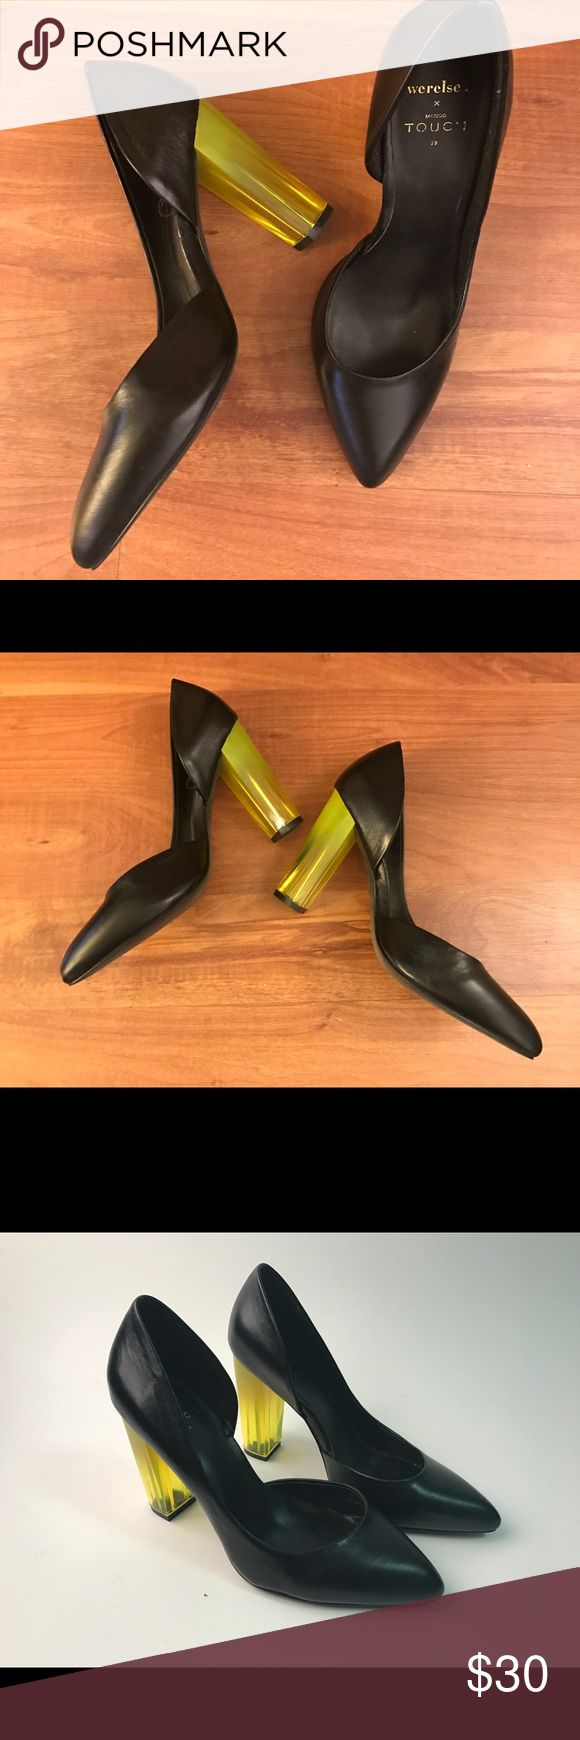 Black pumps with yellow heels Limited edition pumps from Mango x Touch. Used twice. Like new! Mango Shoes Heels